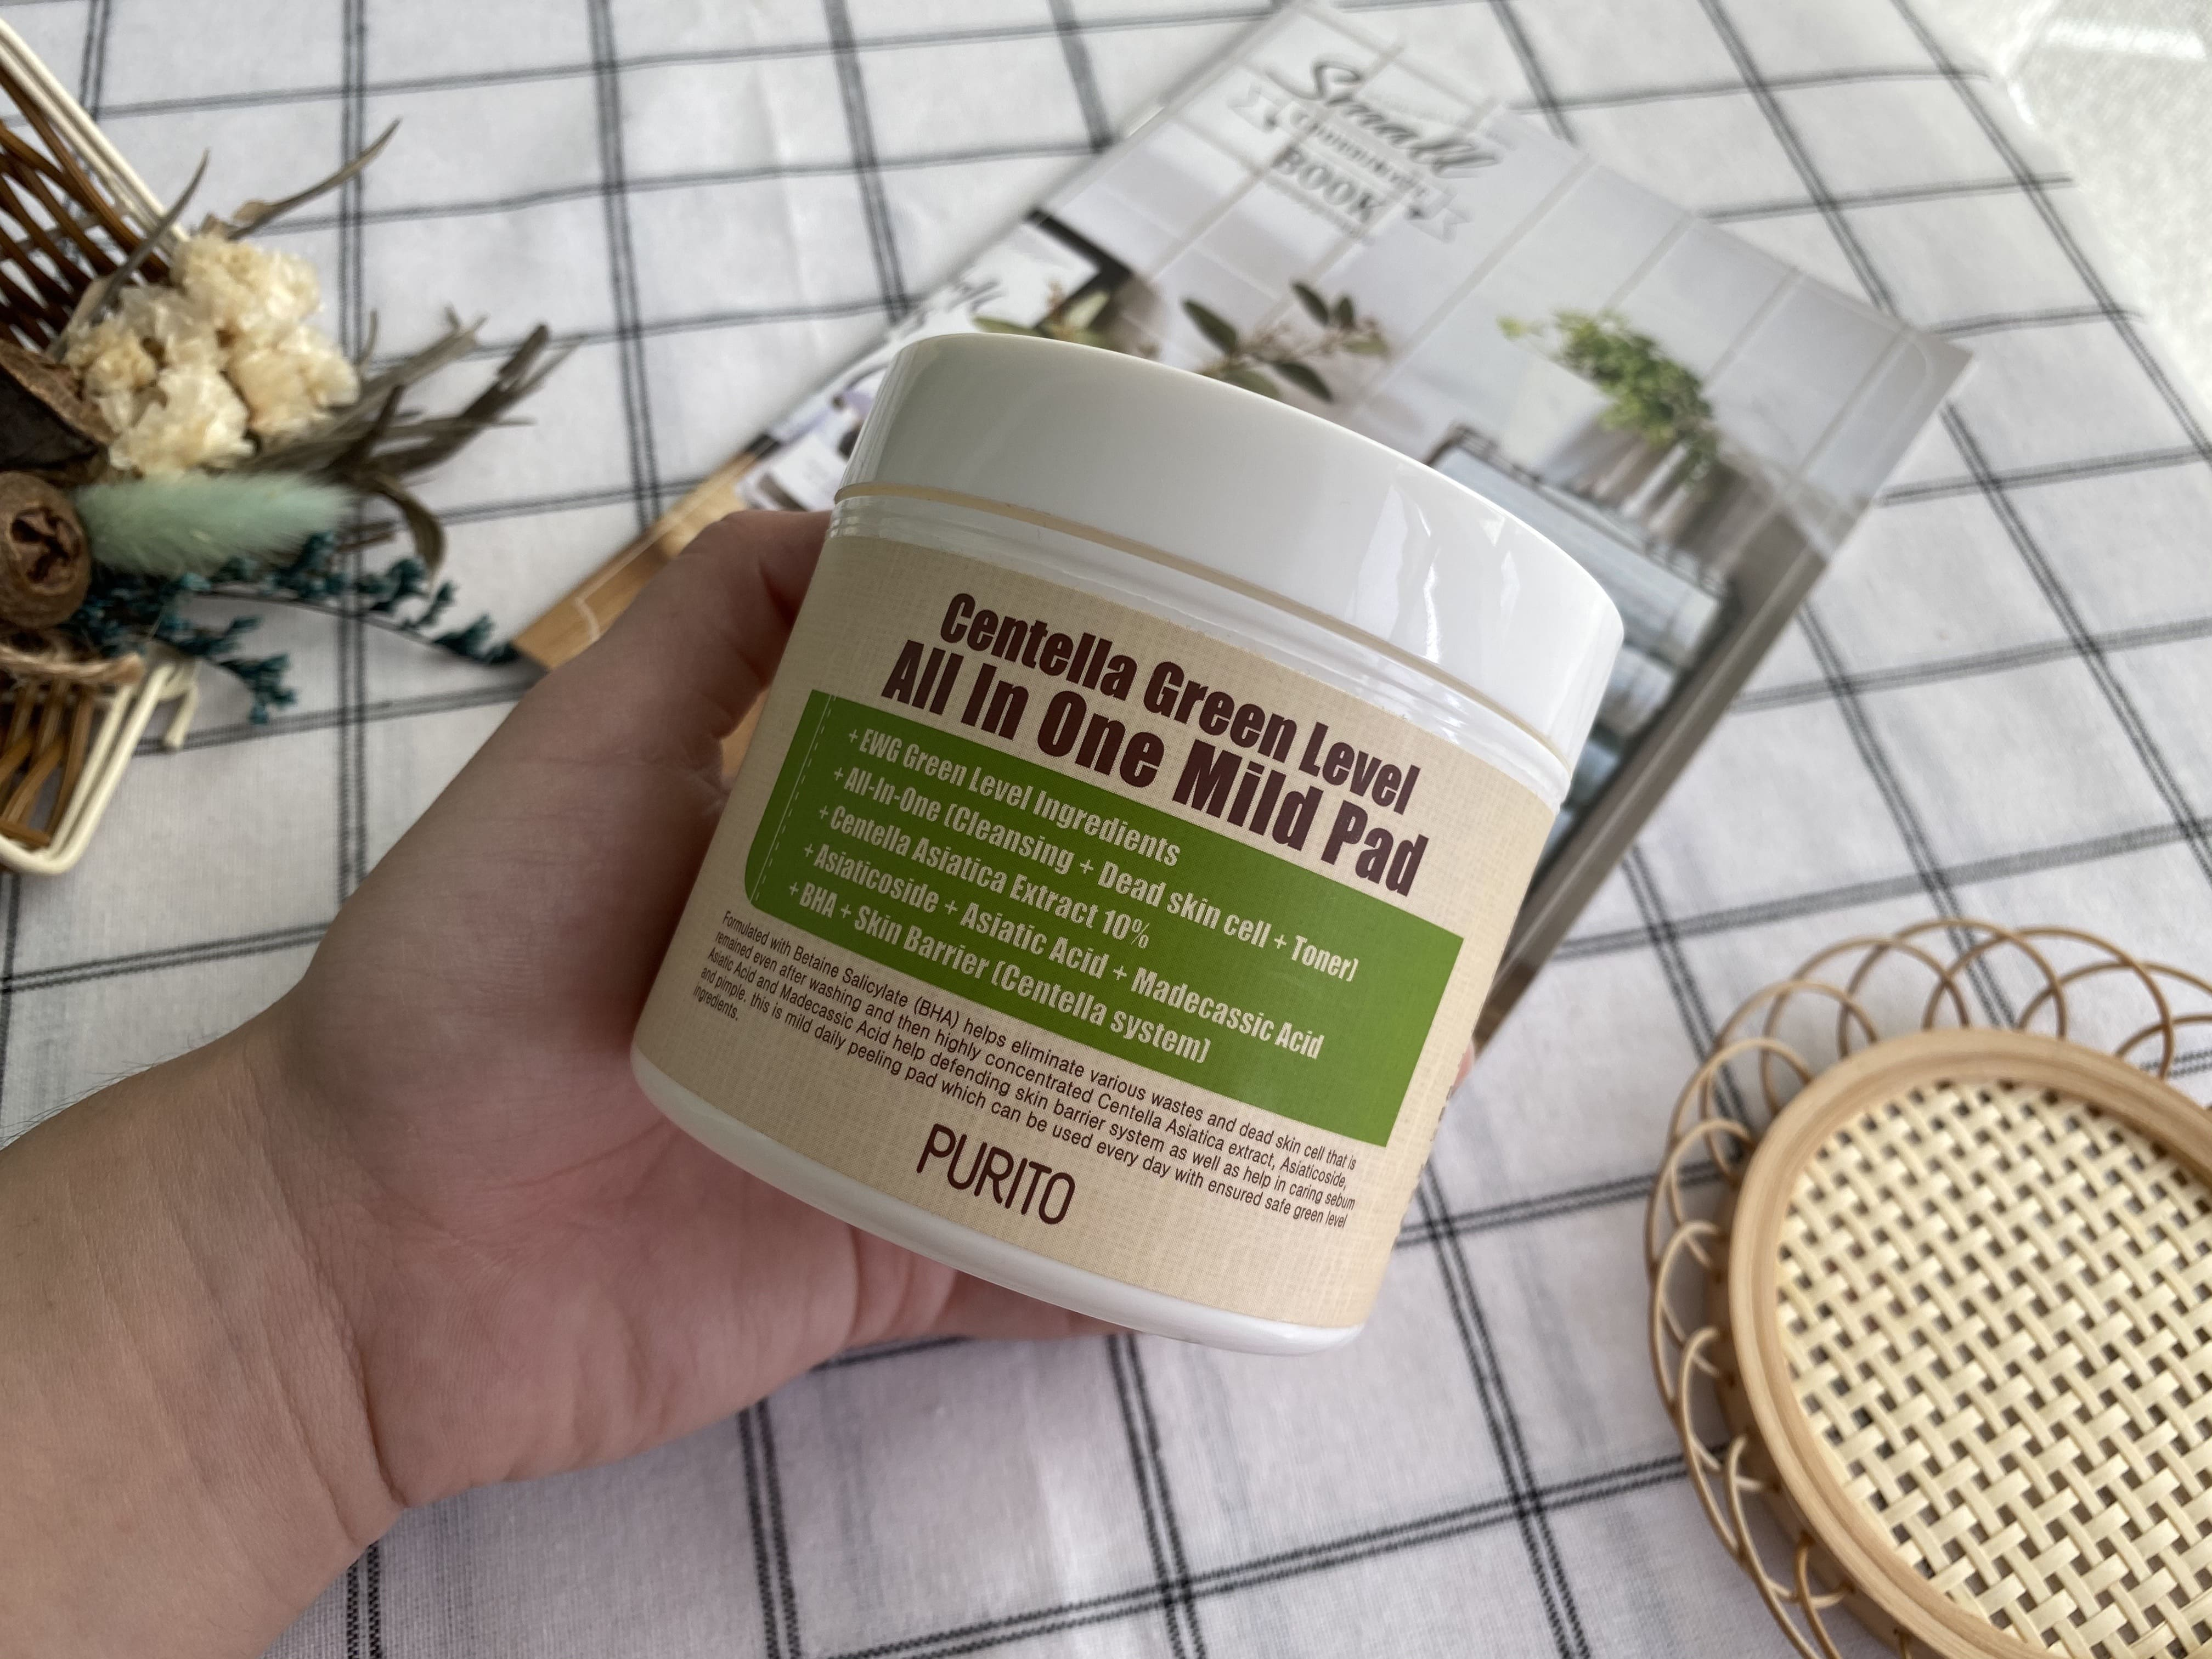 REVIEW | Purito Centella Green Level All In One Mild Pad